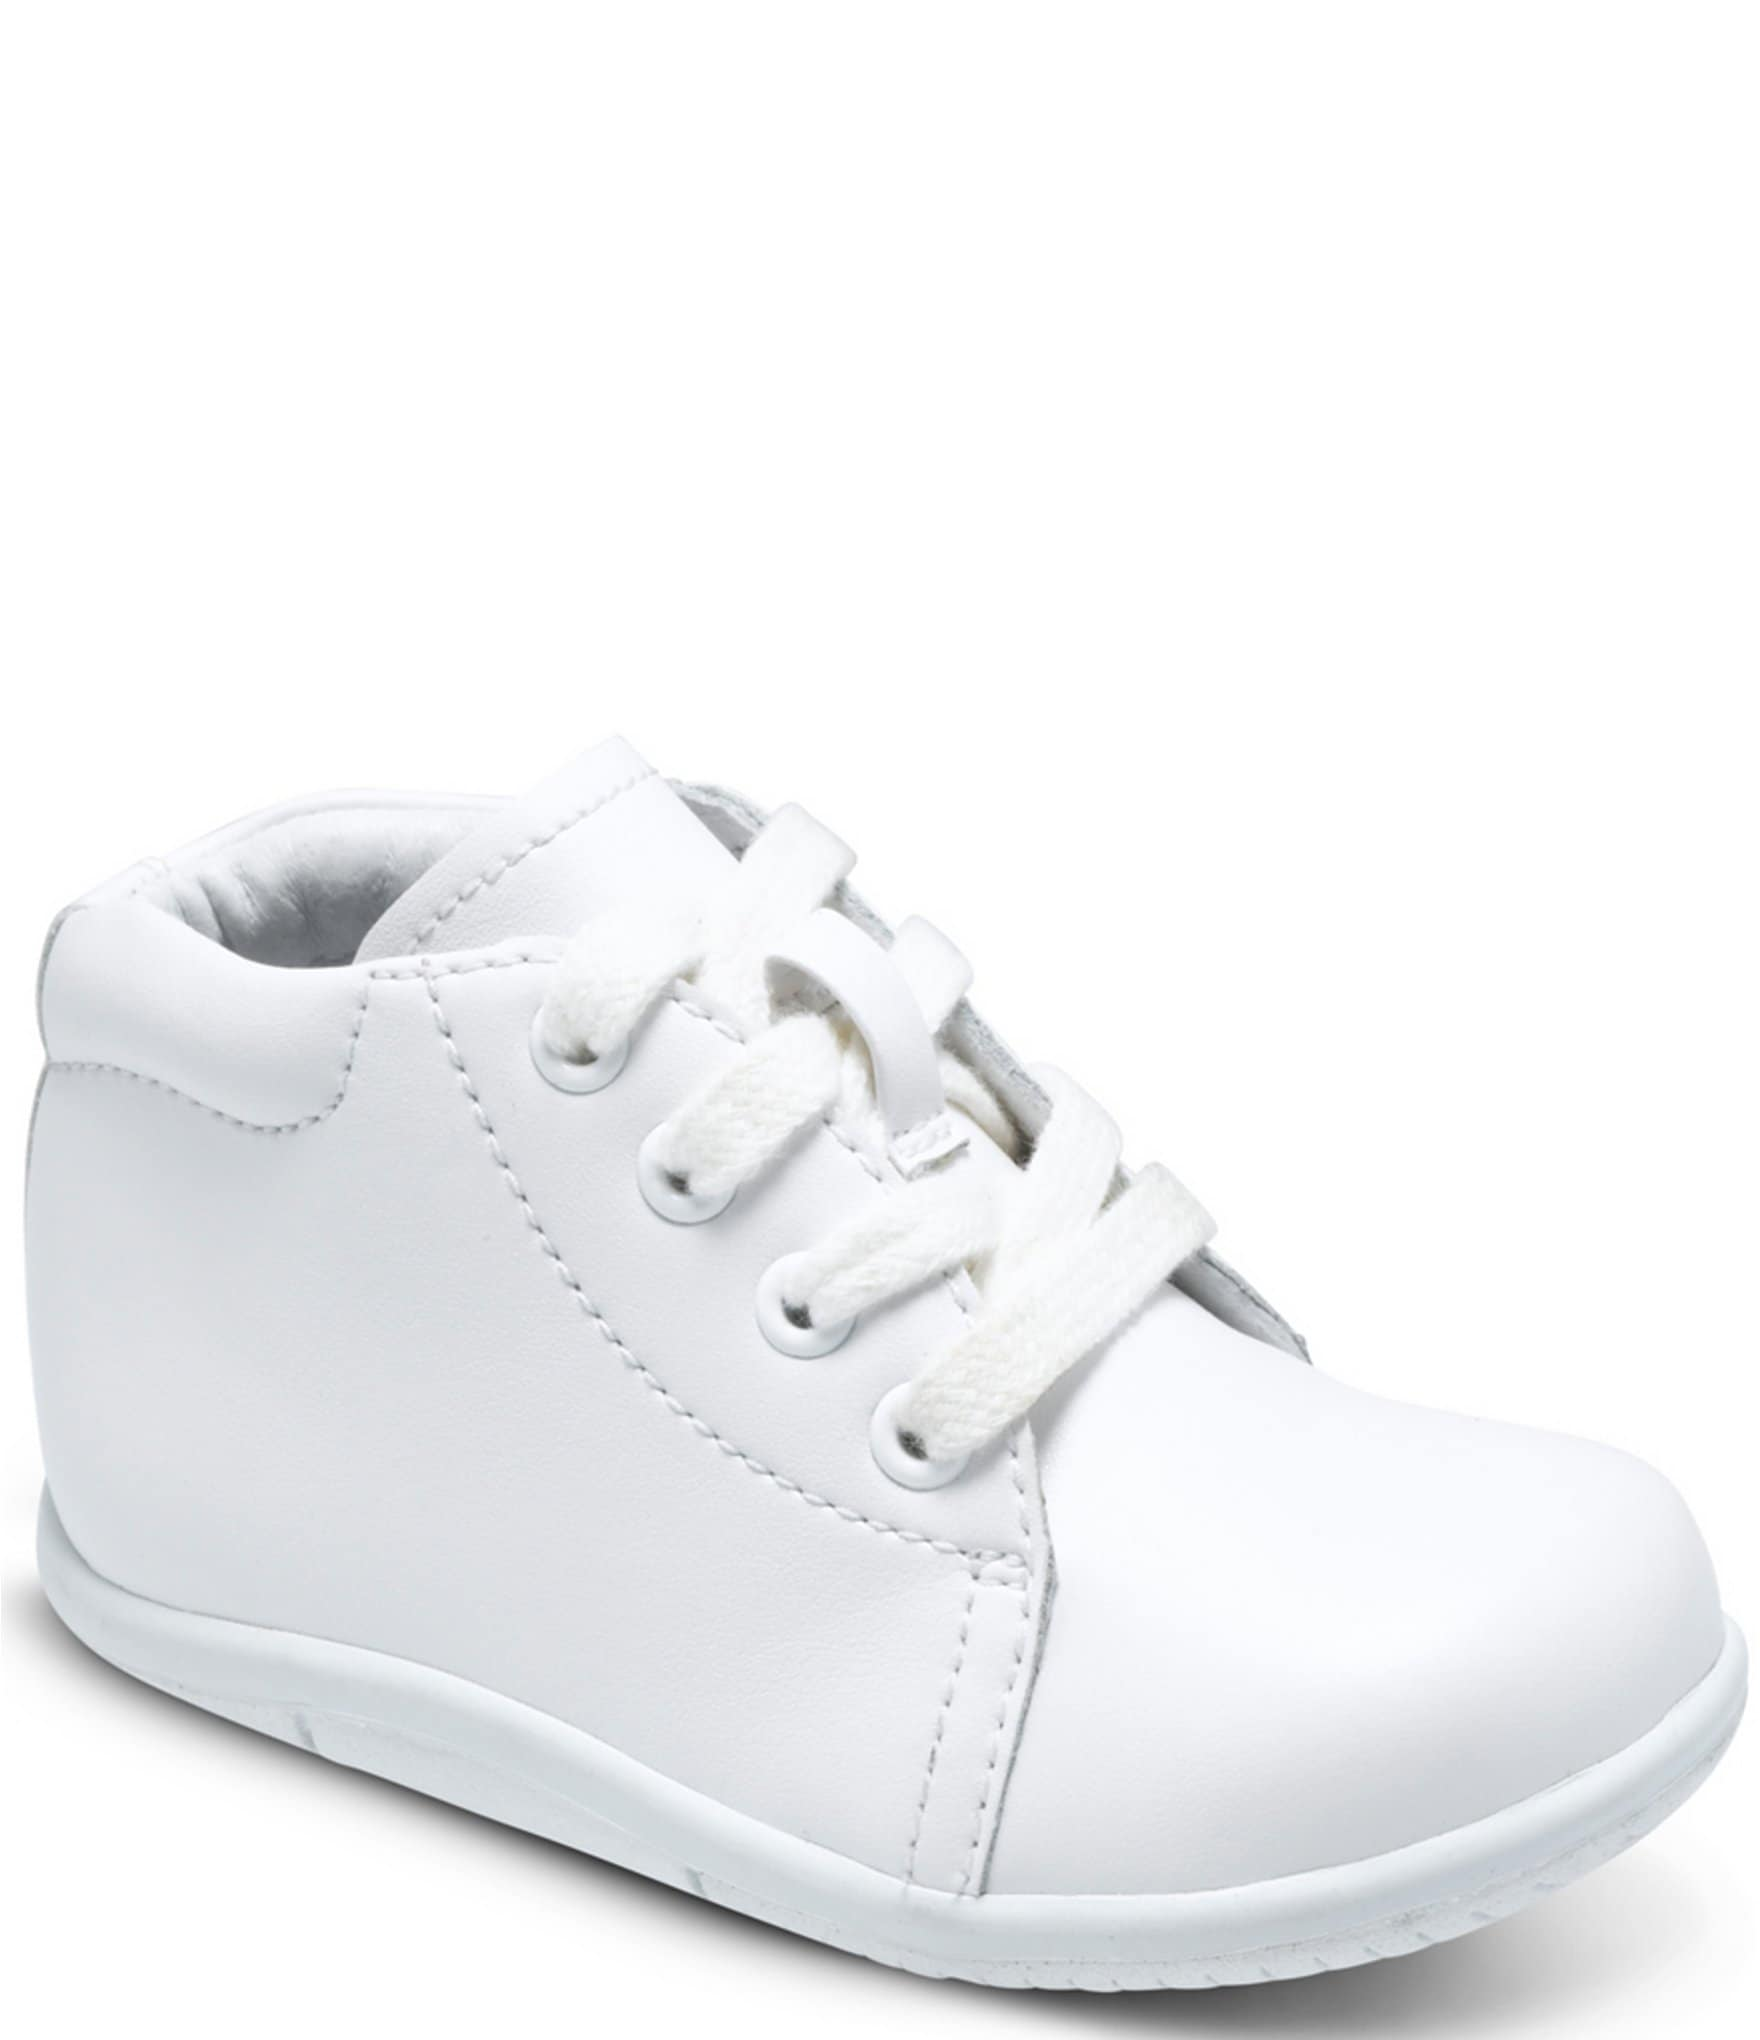 Infant White Walking Shoes